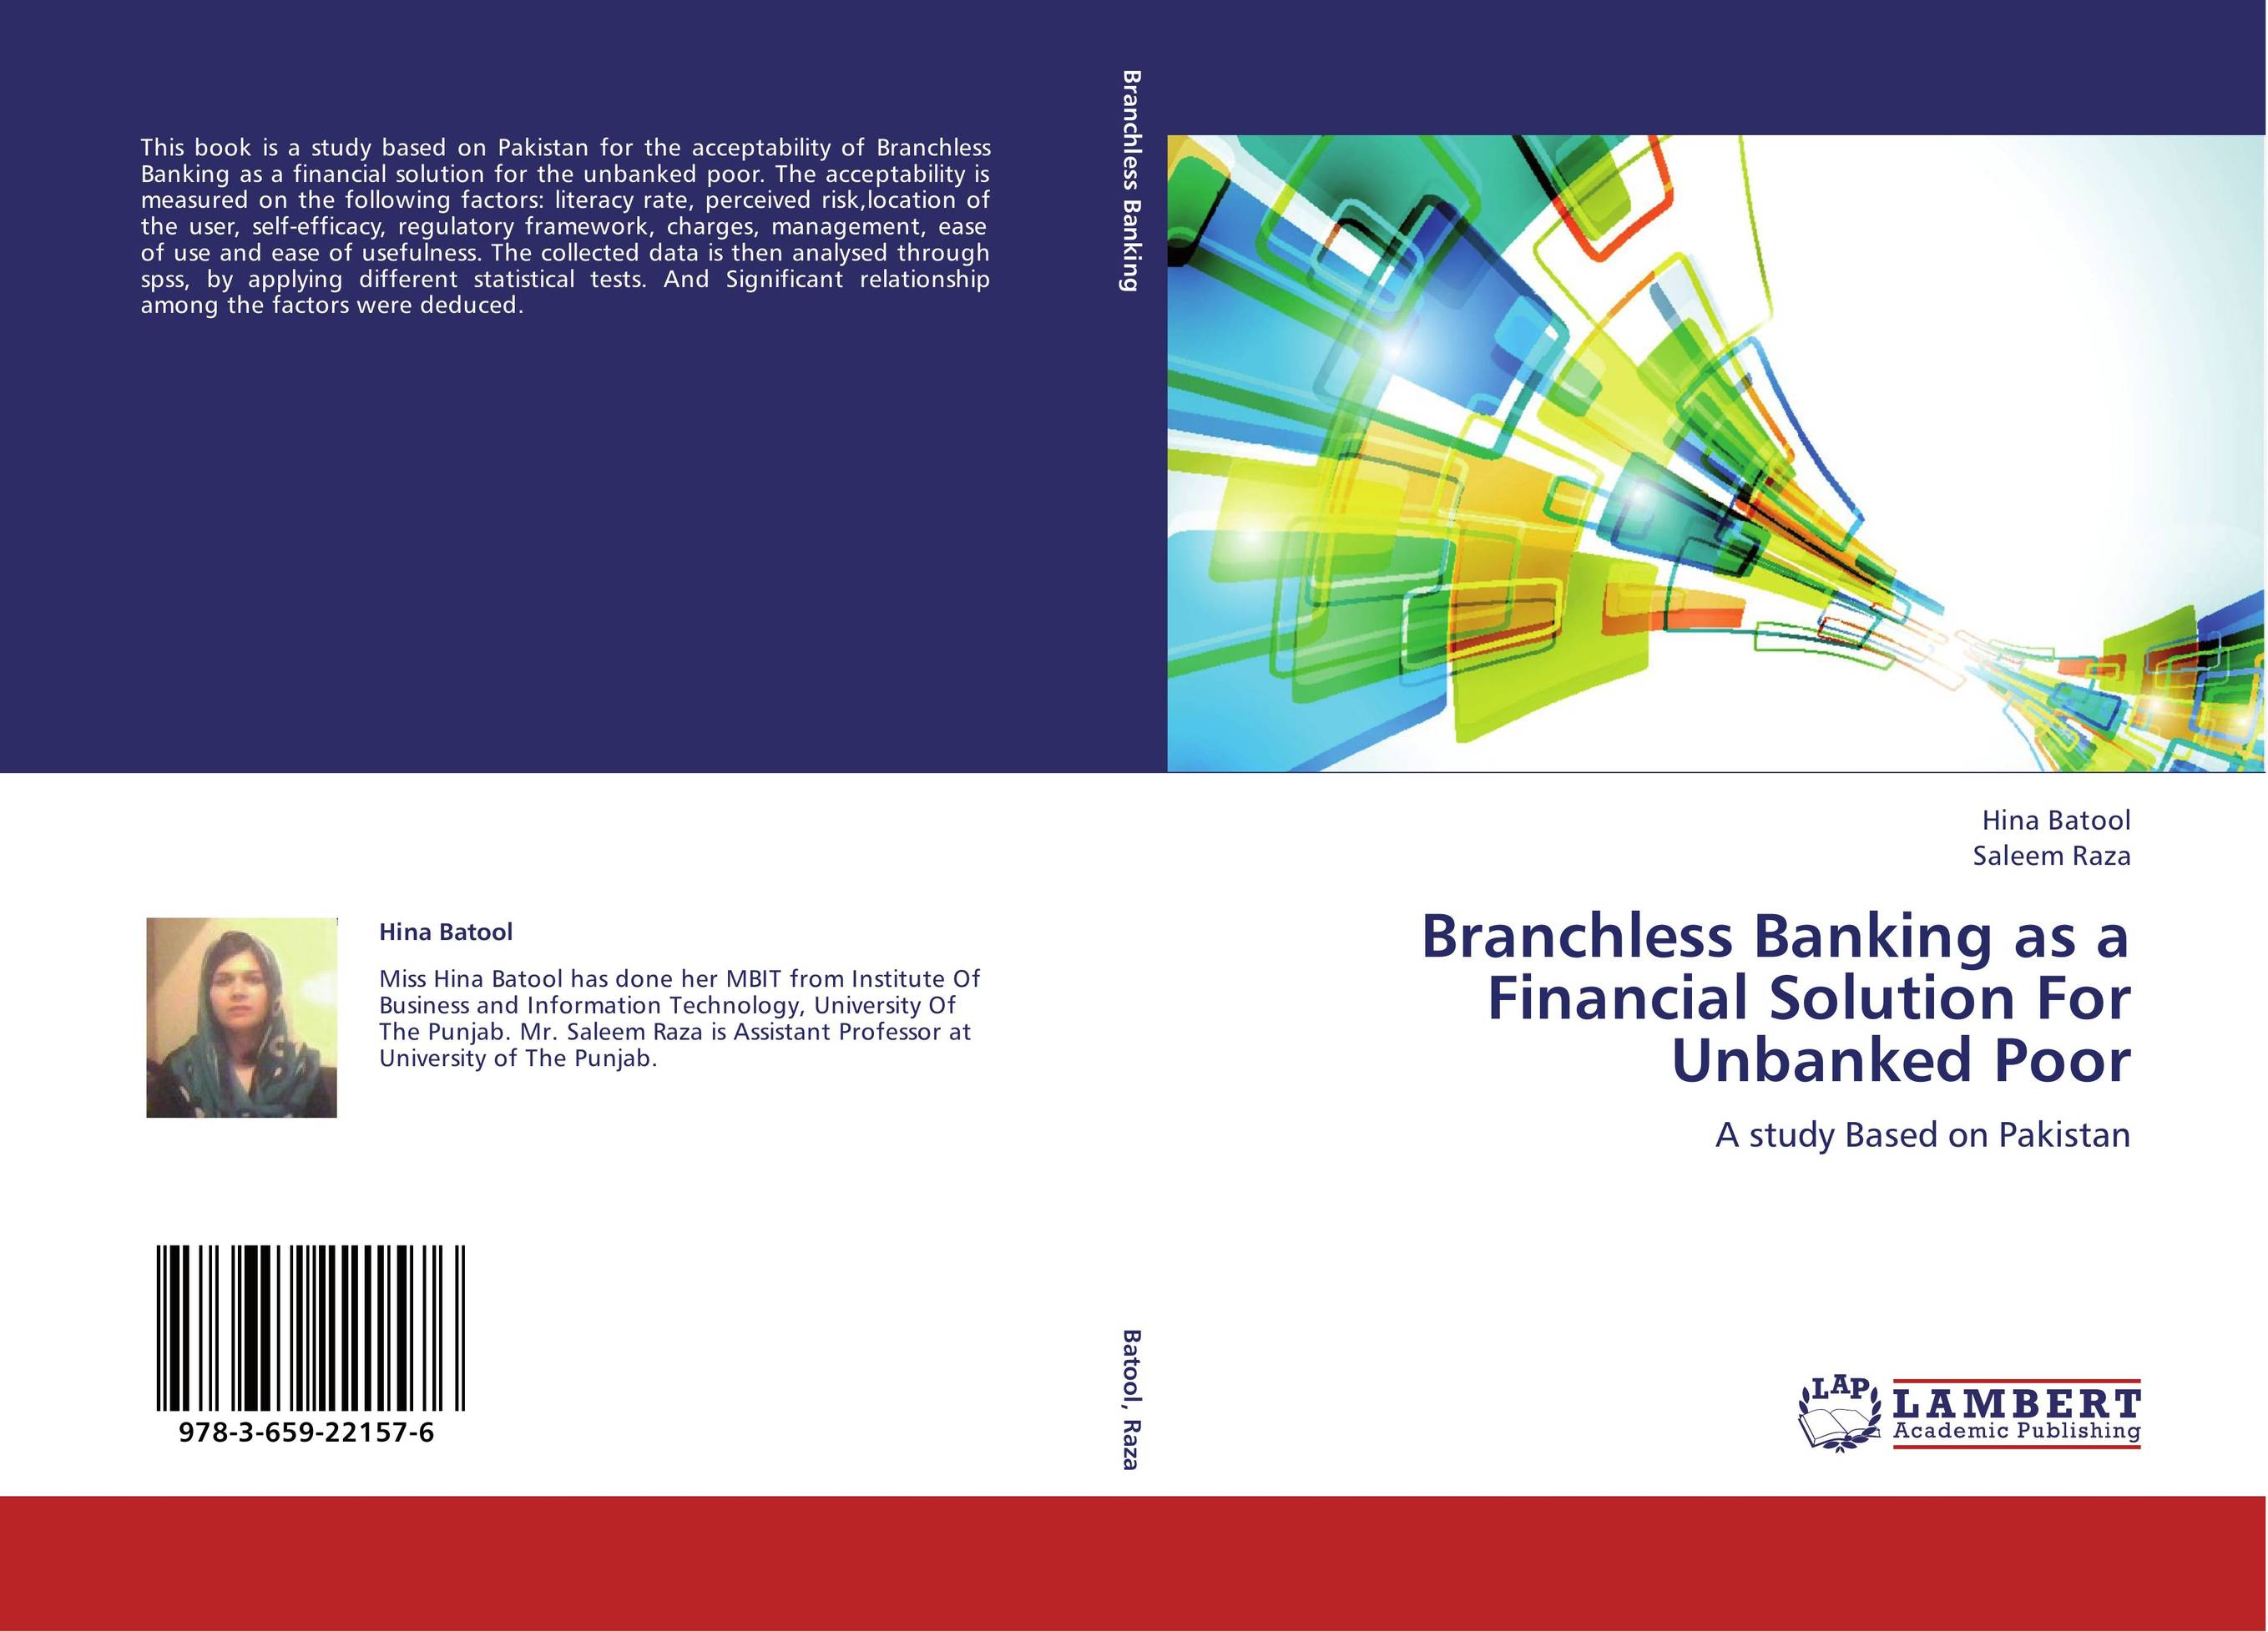 branchless banking leveraging information and communication Bank alfalah and muller & phipps pakistan to launch branchless banking pakistan by leveraging its expertise and communications bank alfalah.